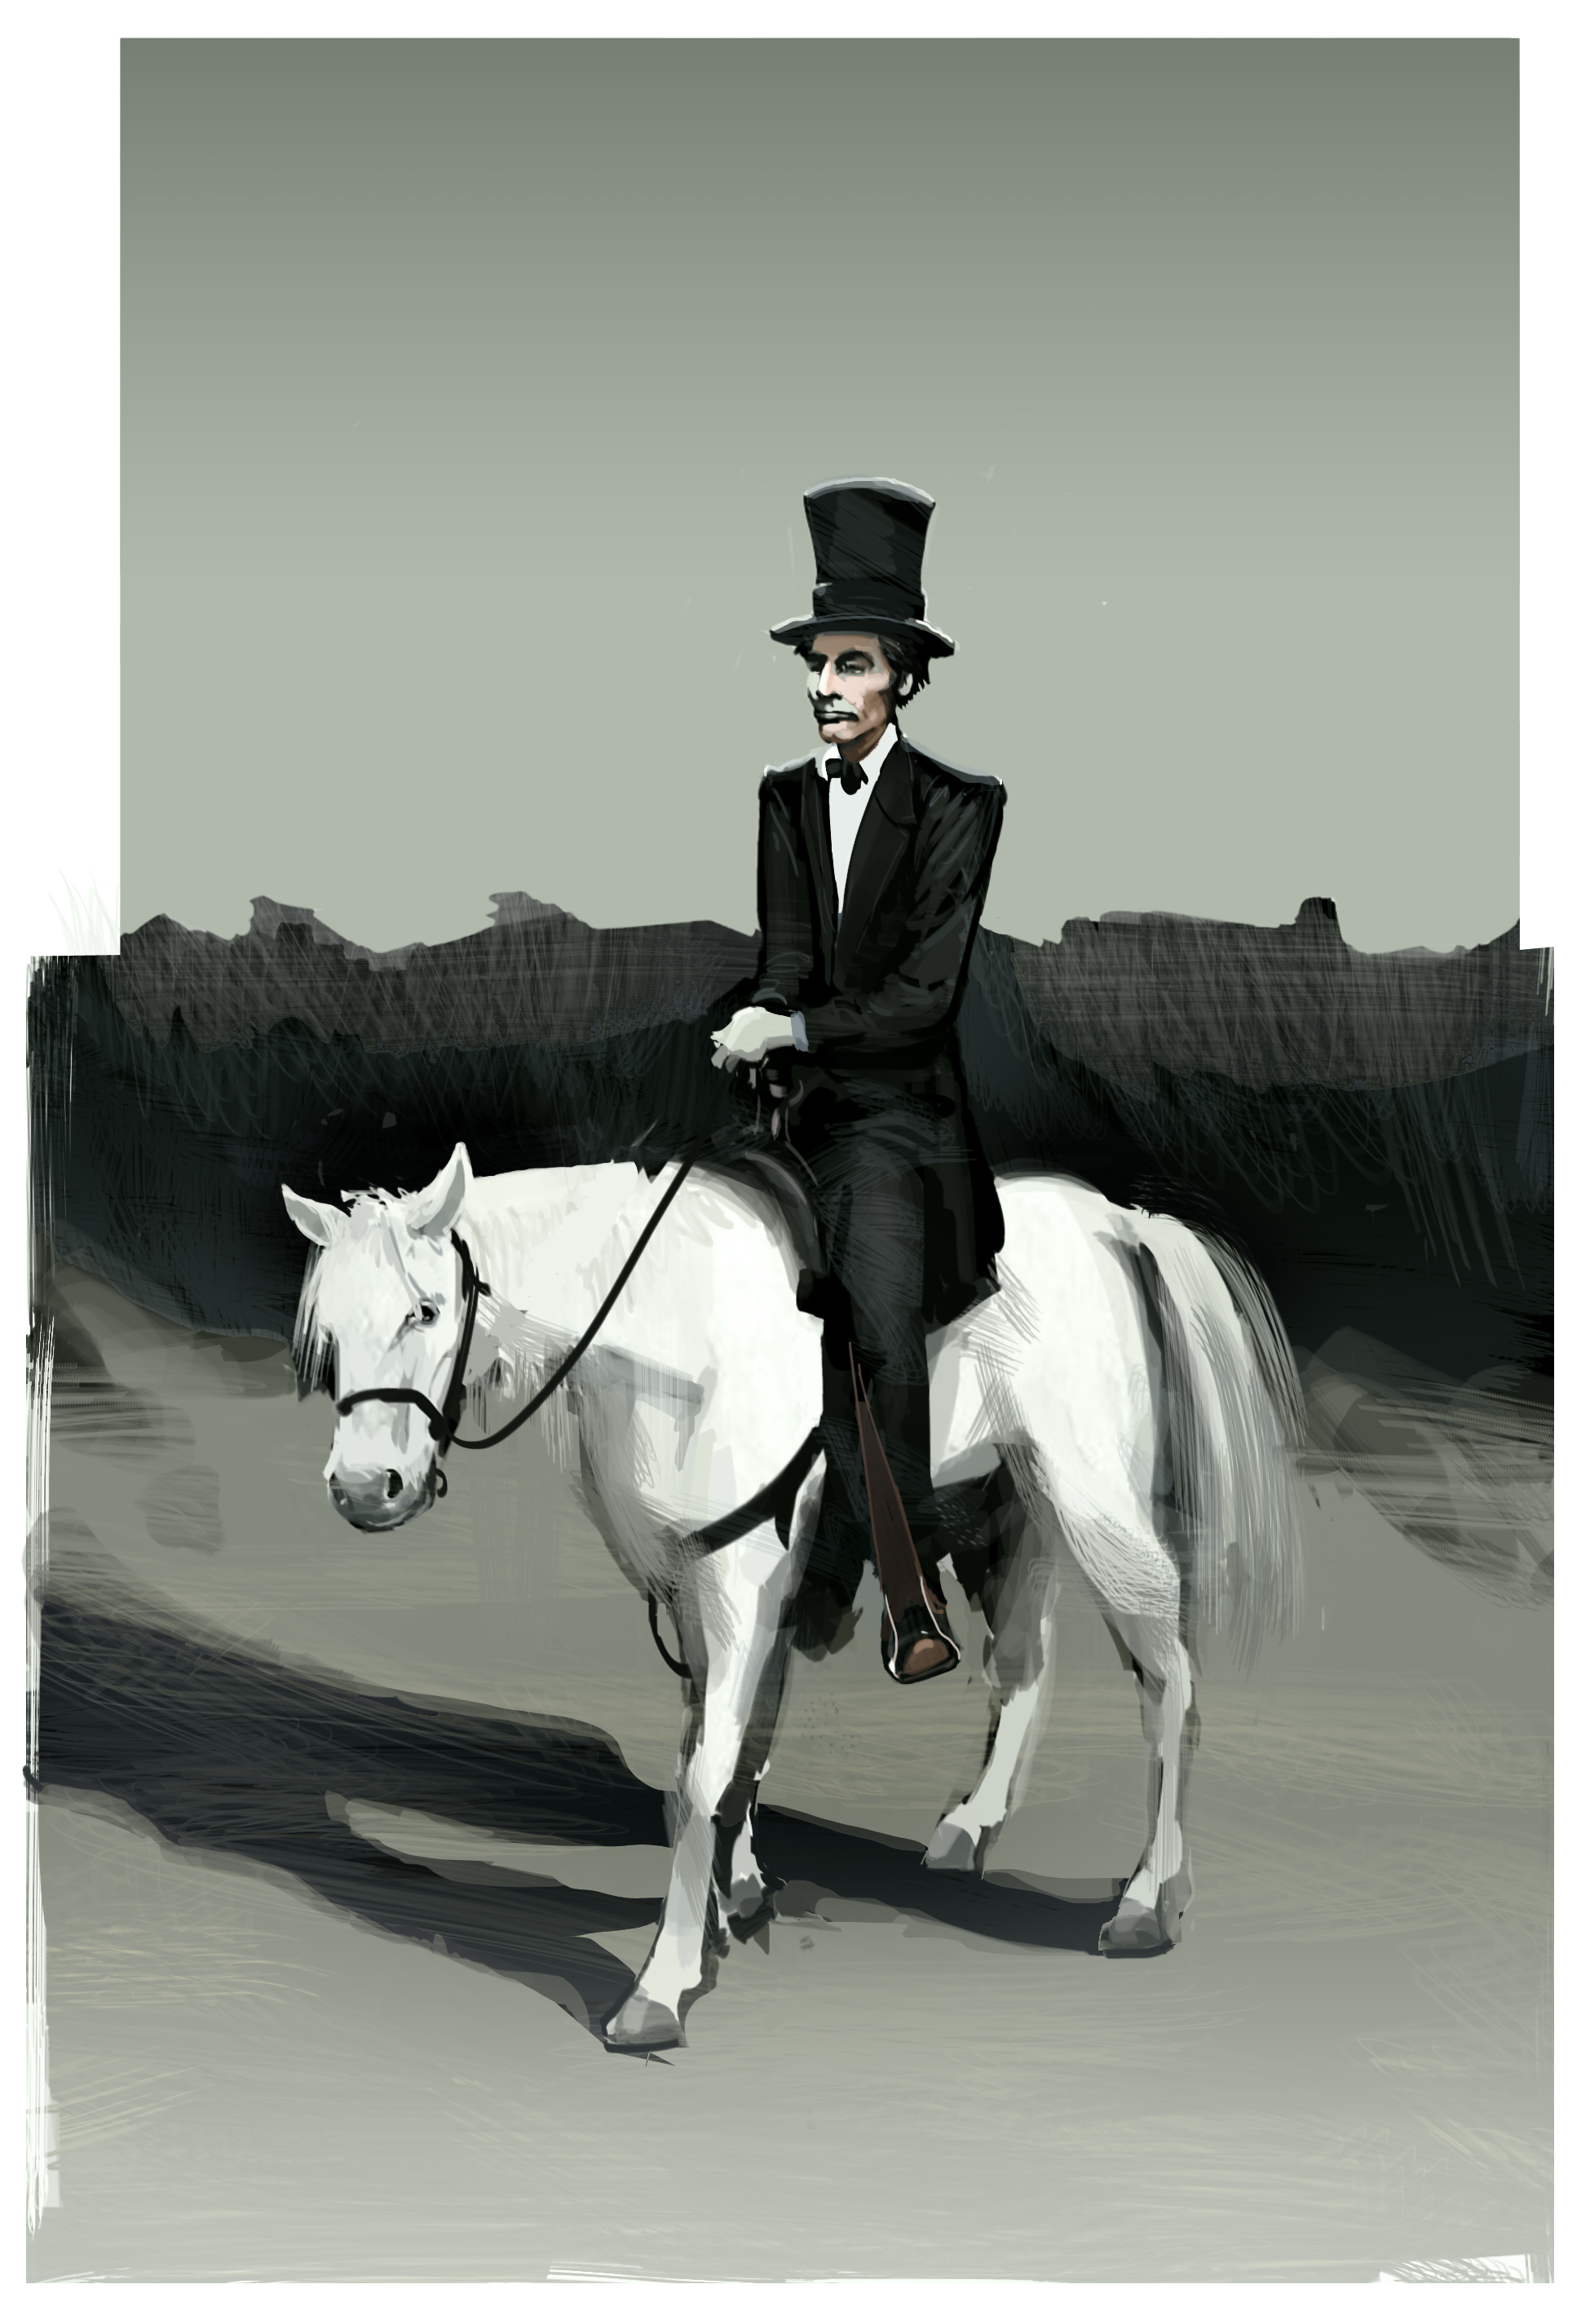 Abe on his white horse